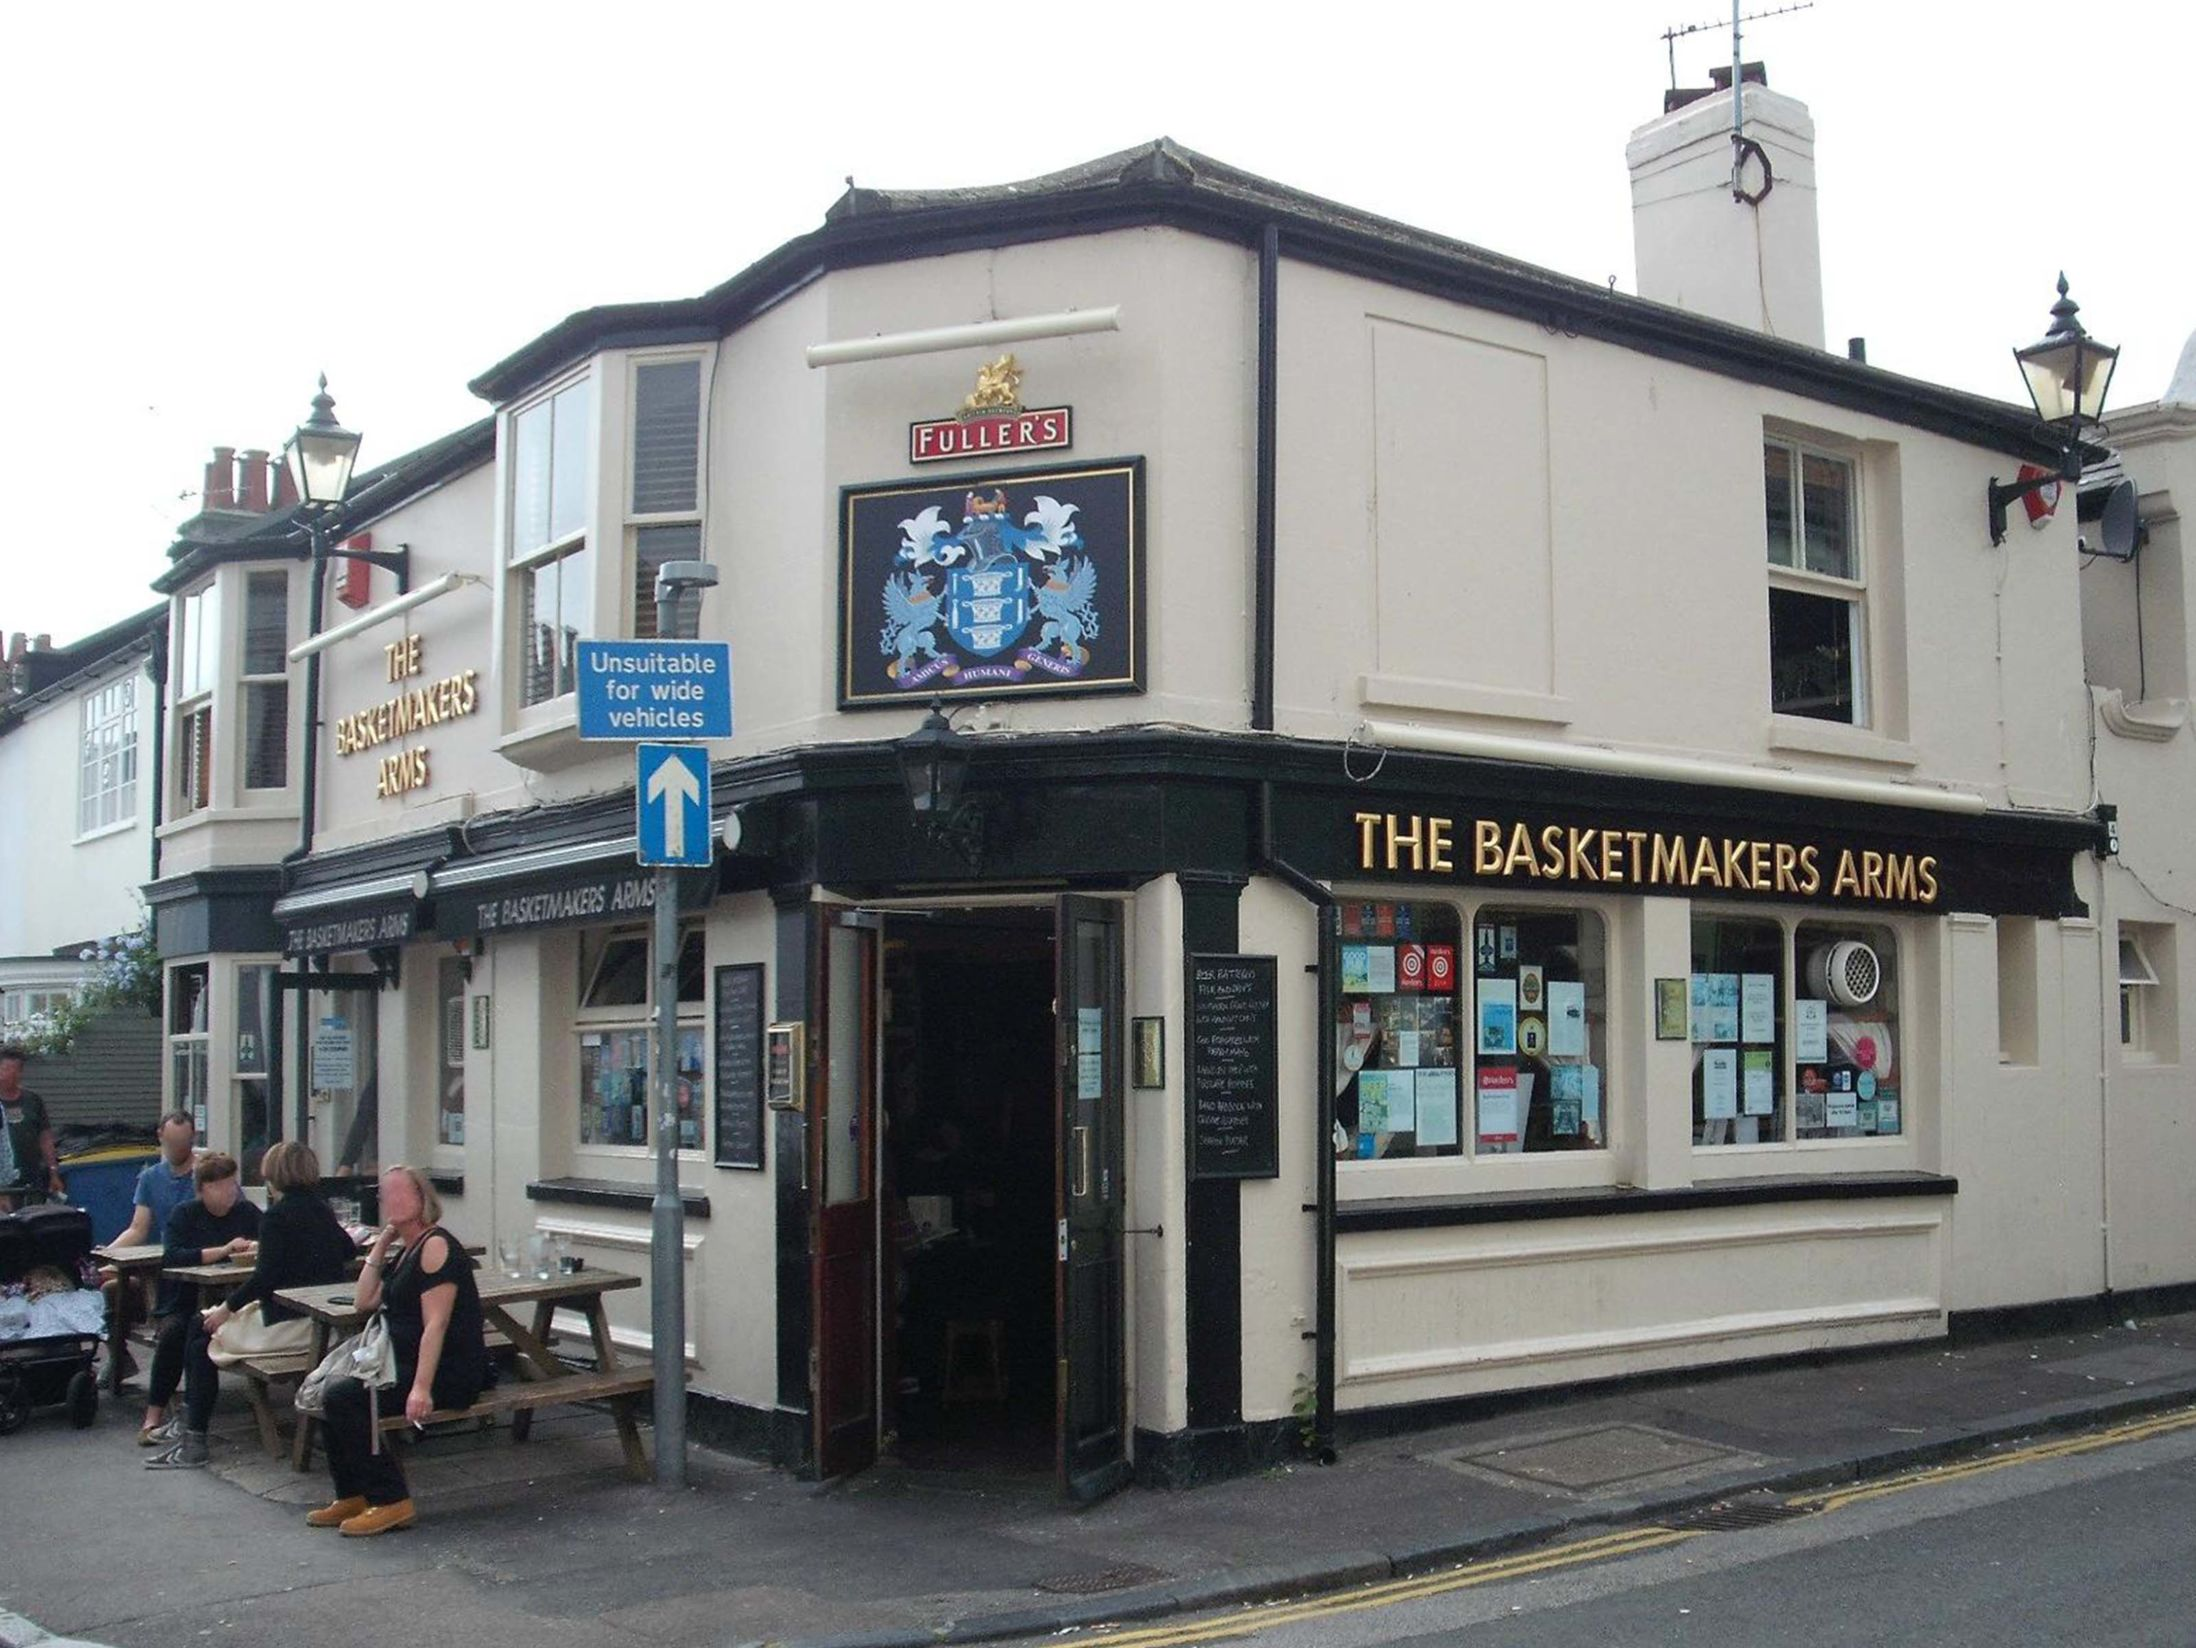 Best Pubs in Brighton - The Basketmakers